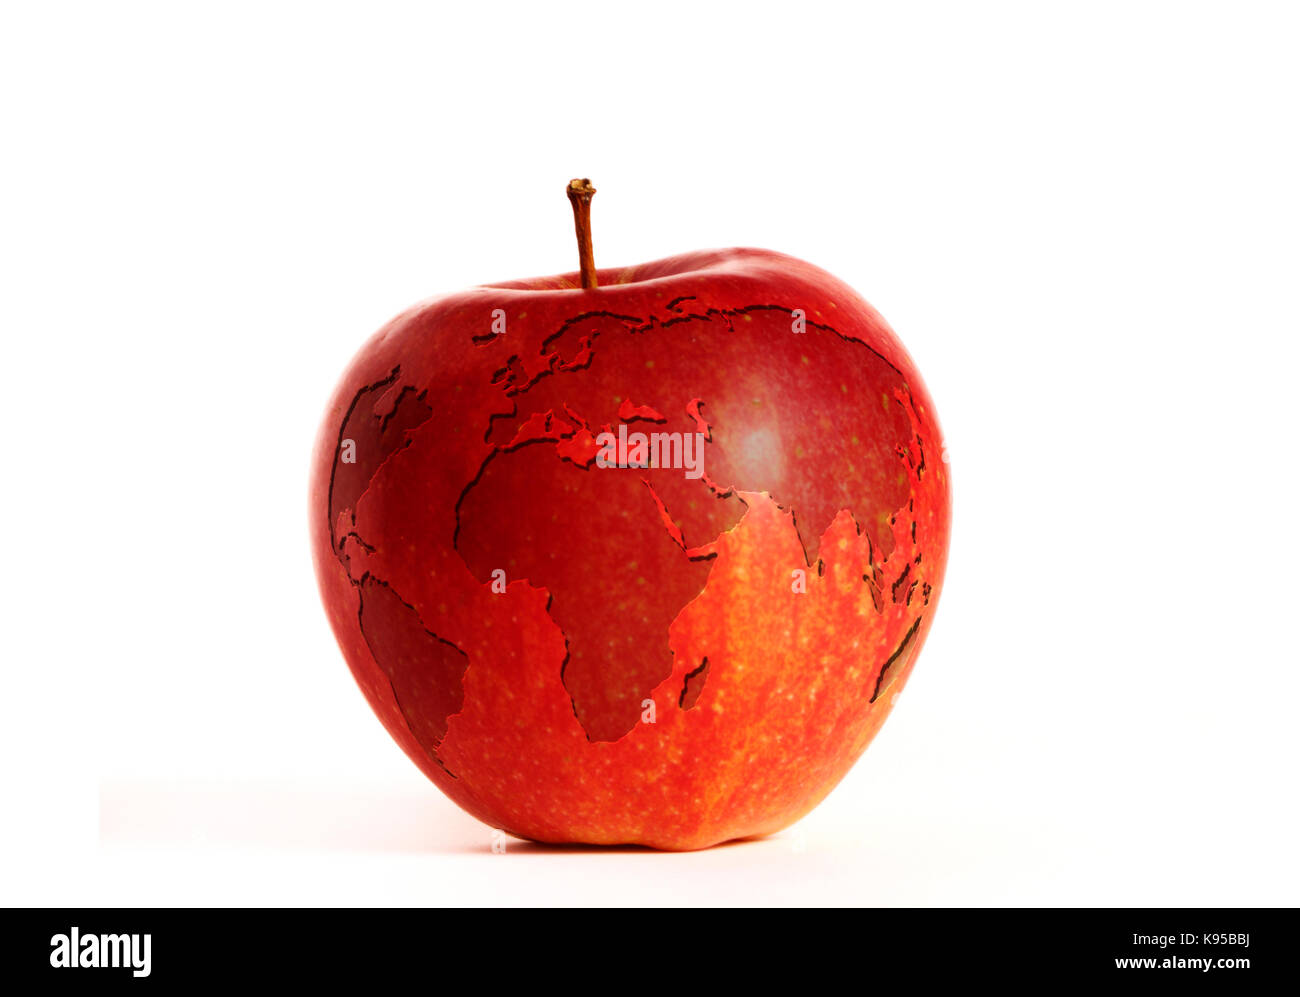 Food world map stock photos food world map stock images alamy world map carved into a red apple stock image gumiabroncs Images